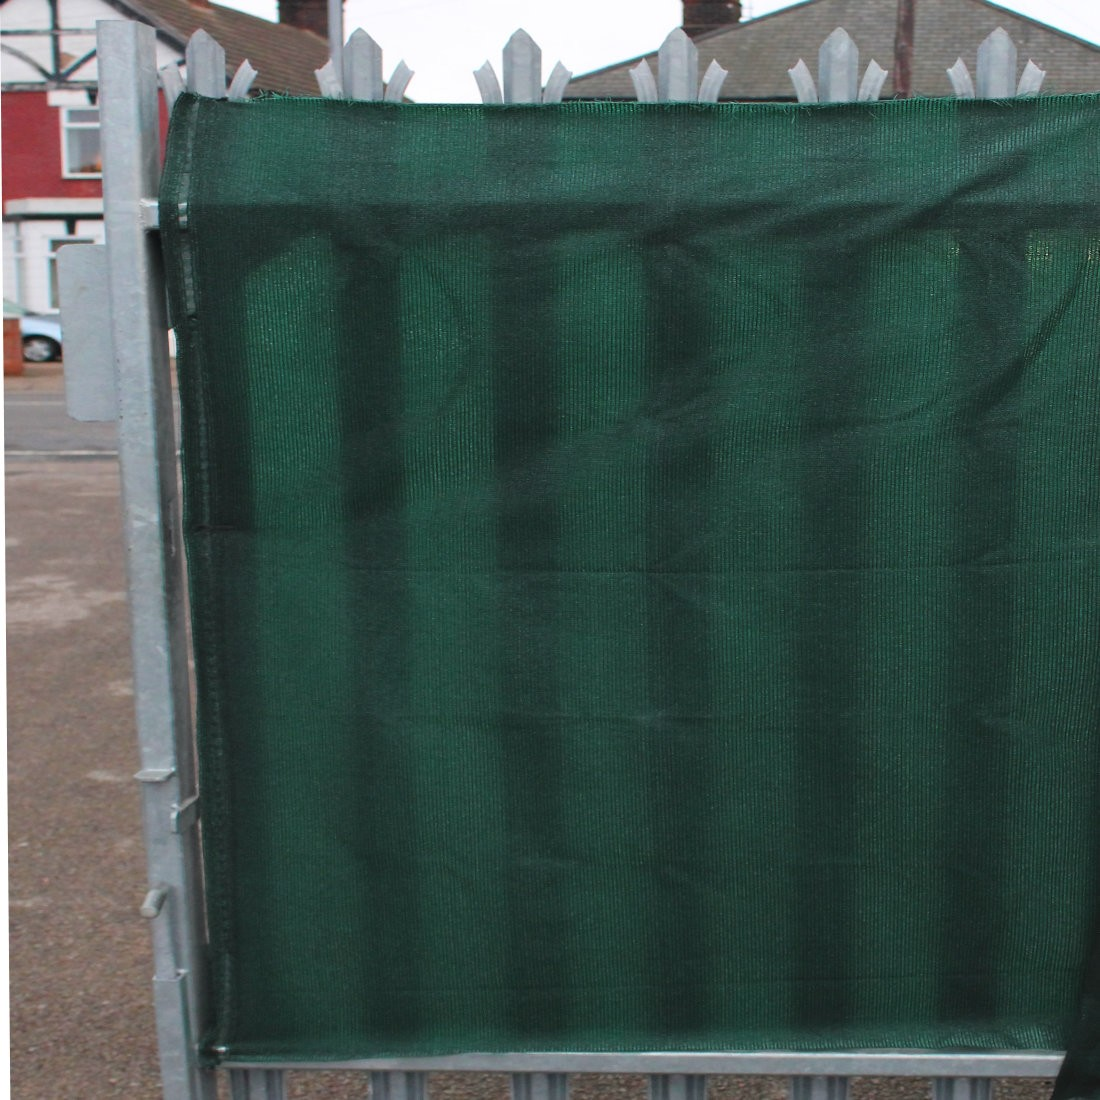 98% Green Shade Netting for Privacy - 1m, 1.5m or 2m